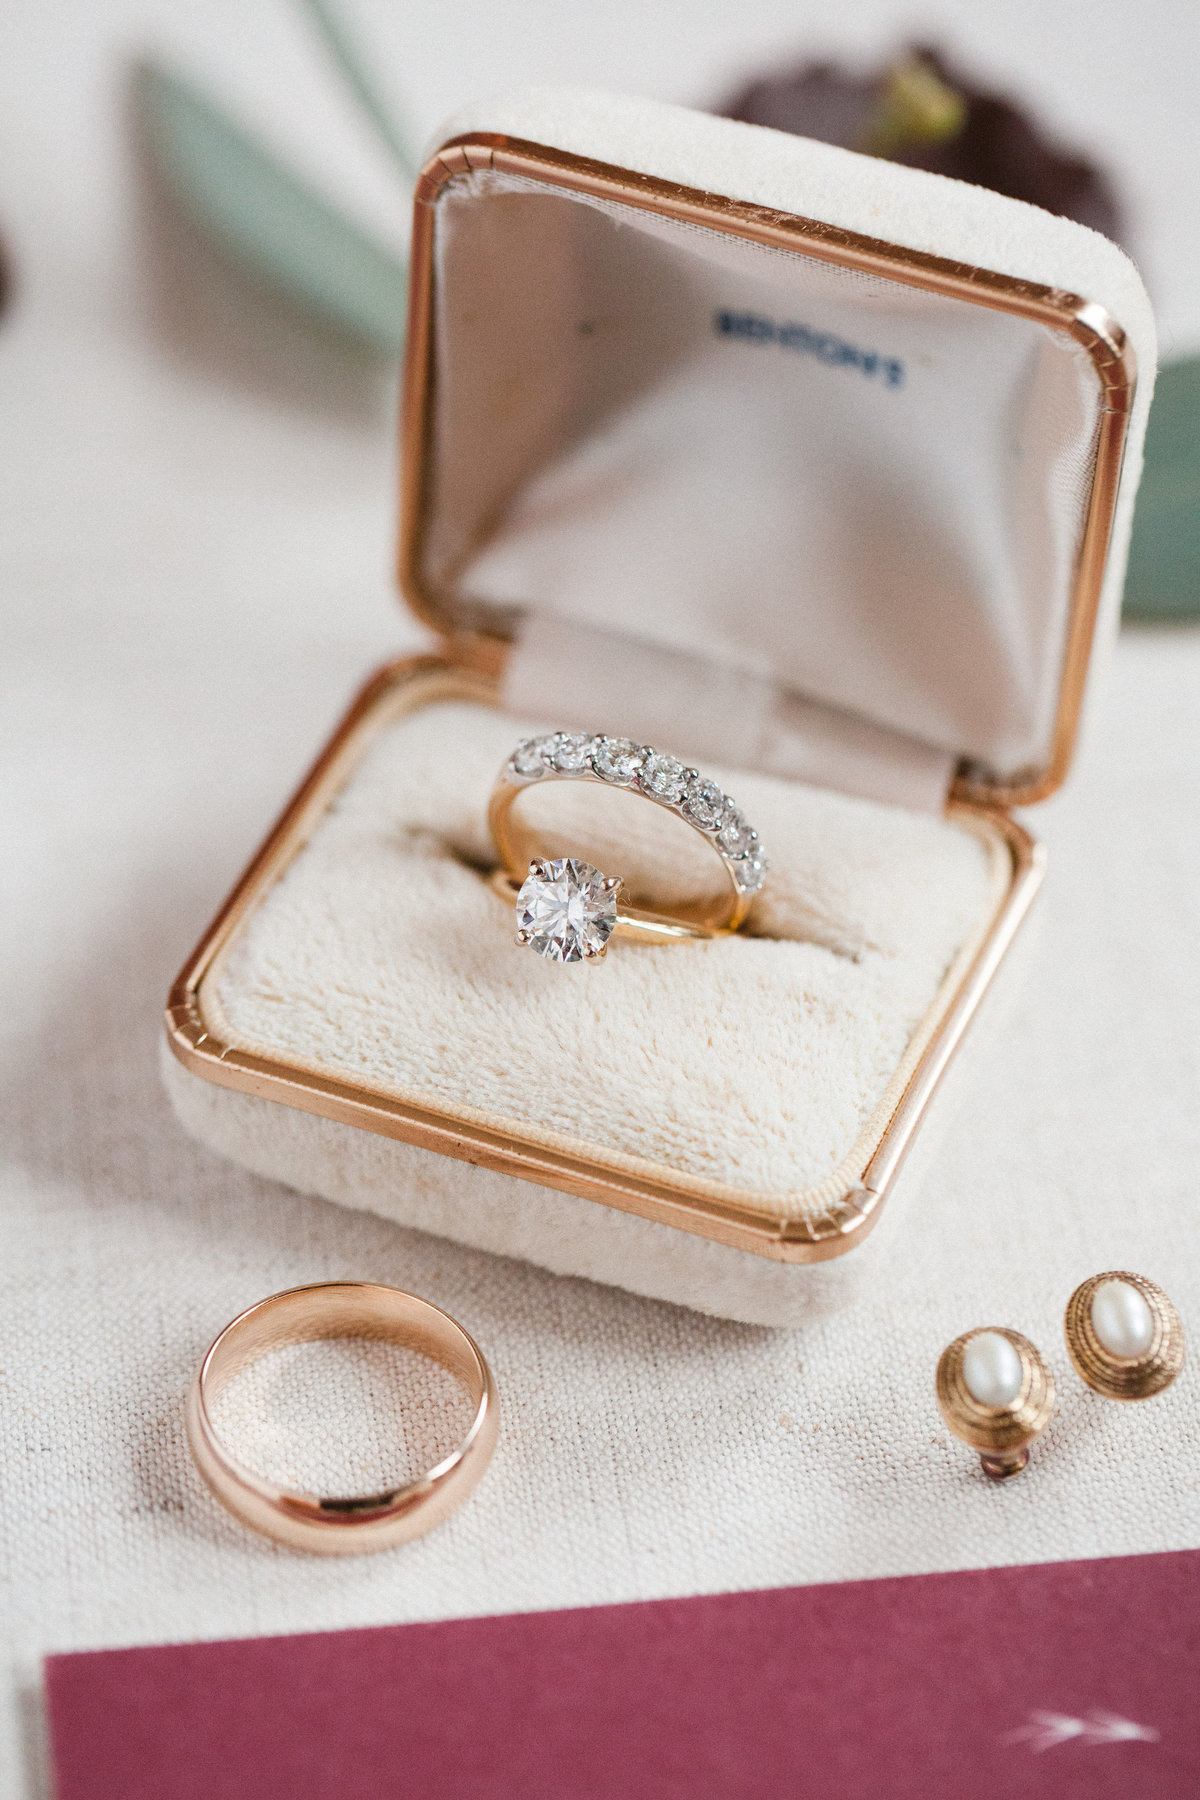 wedding ring hotel dupont Wilmington Delaware